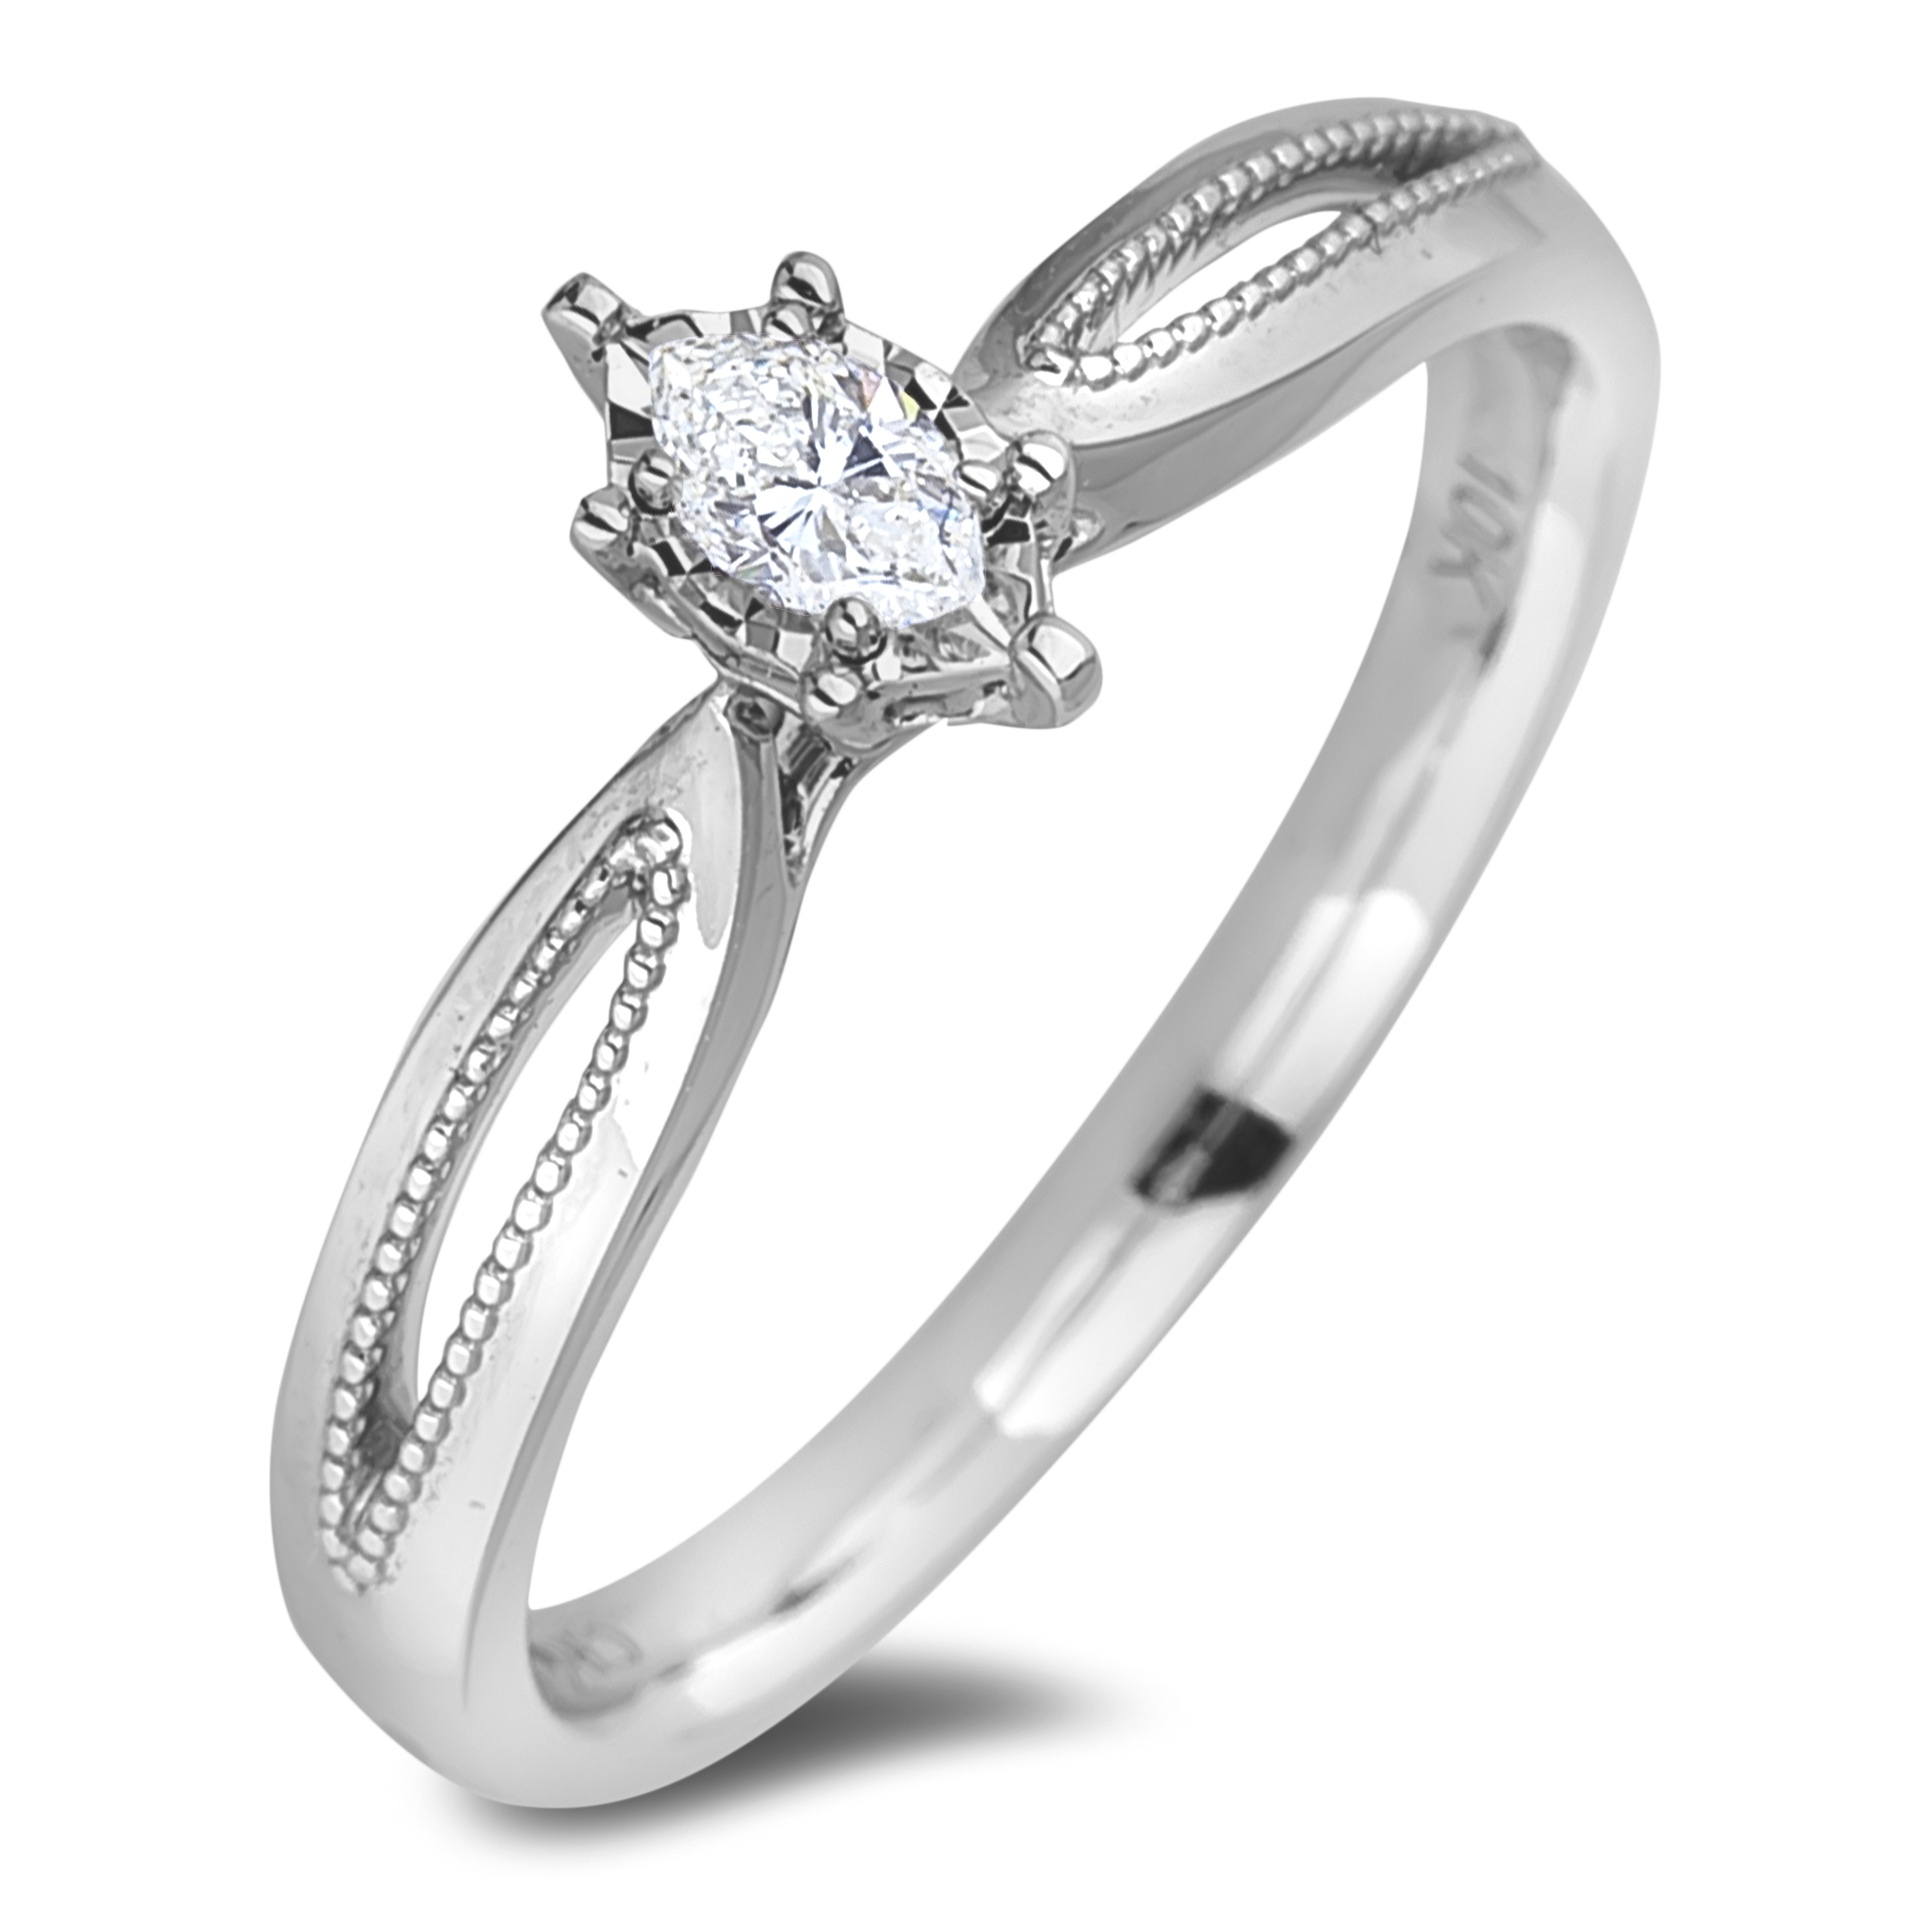 Diamond Solitaire Rings JS-AFCR2133 (Rings)